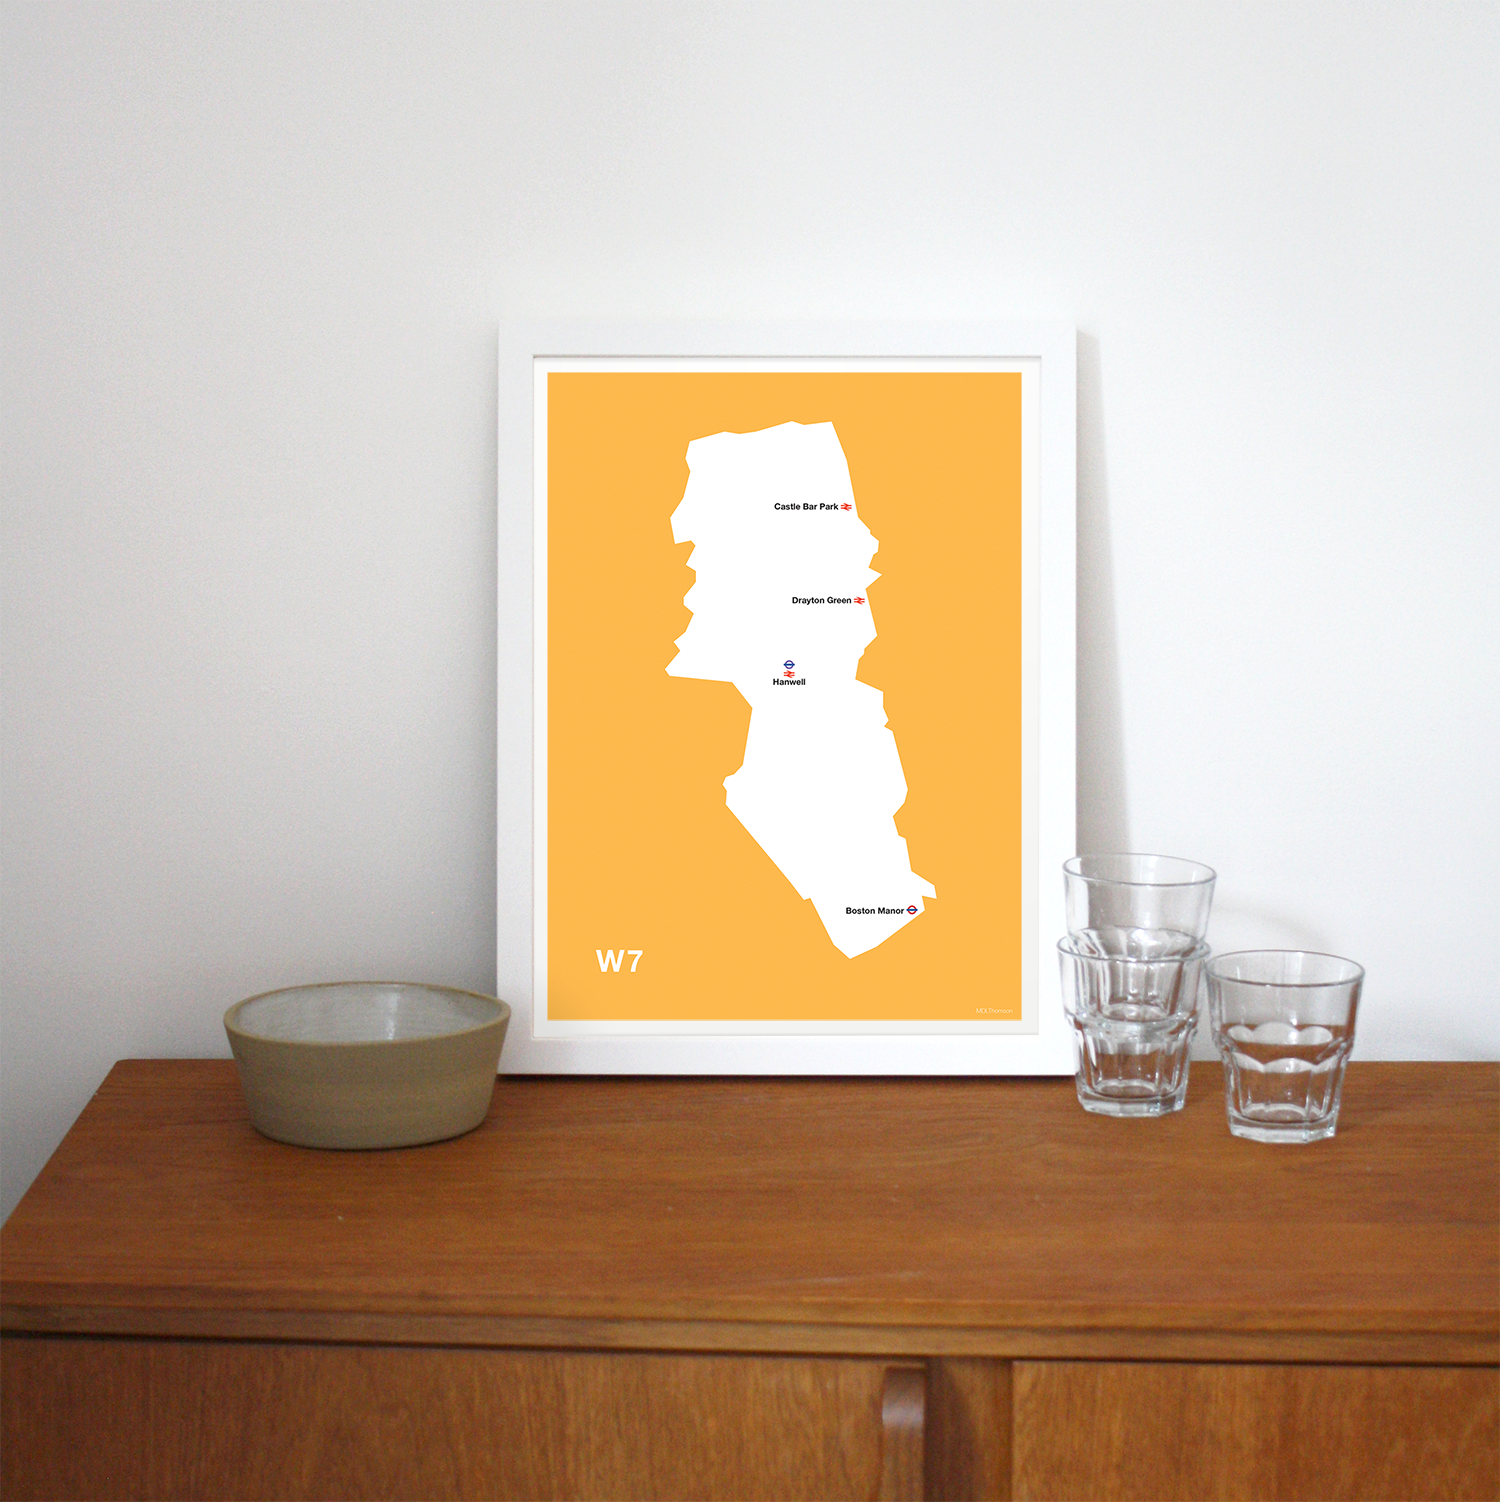 Place in Print MDLThomson W7 Postcode Map Art Print Lifestyle